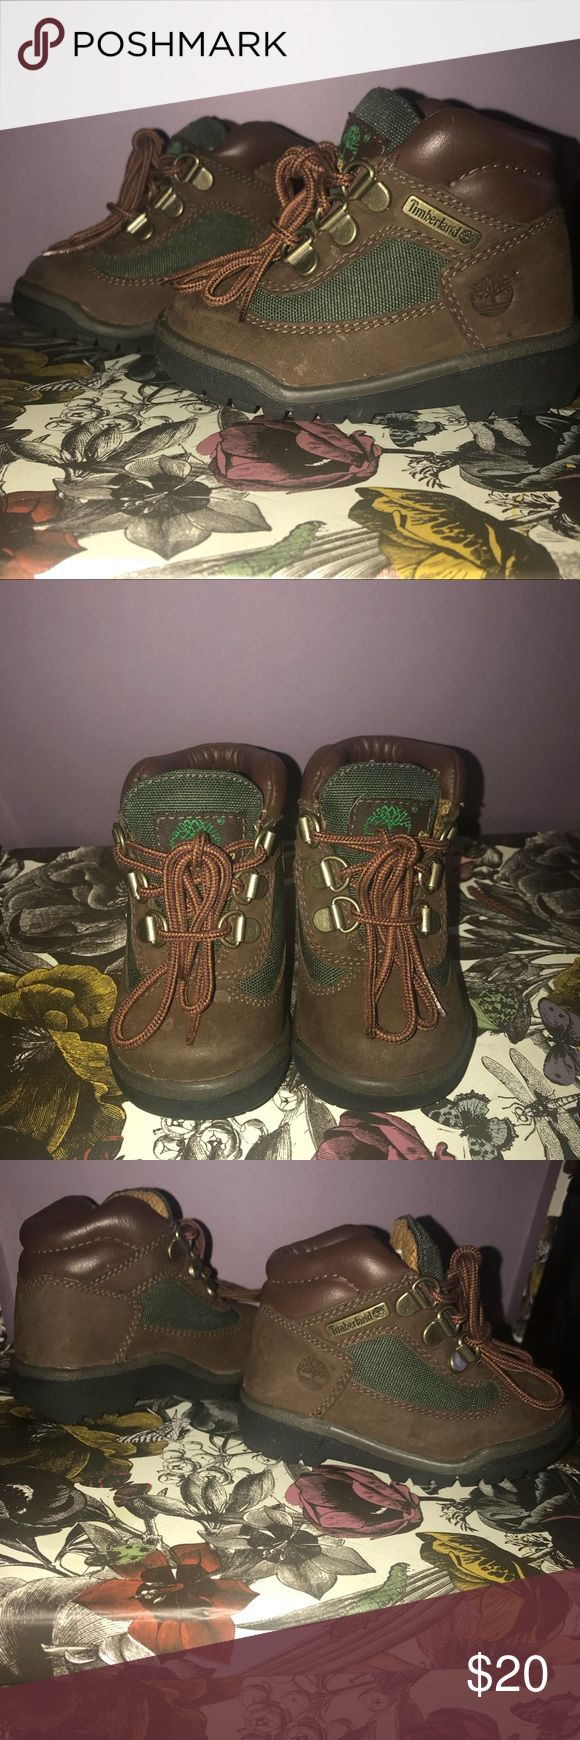 Toddler timberland field boot Beef and broccoli Unisex Timberland boot Timberland Shoes Boots